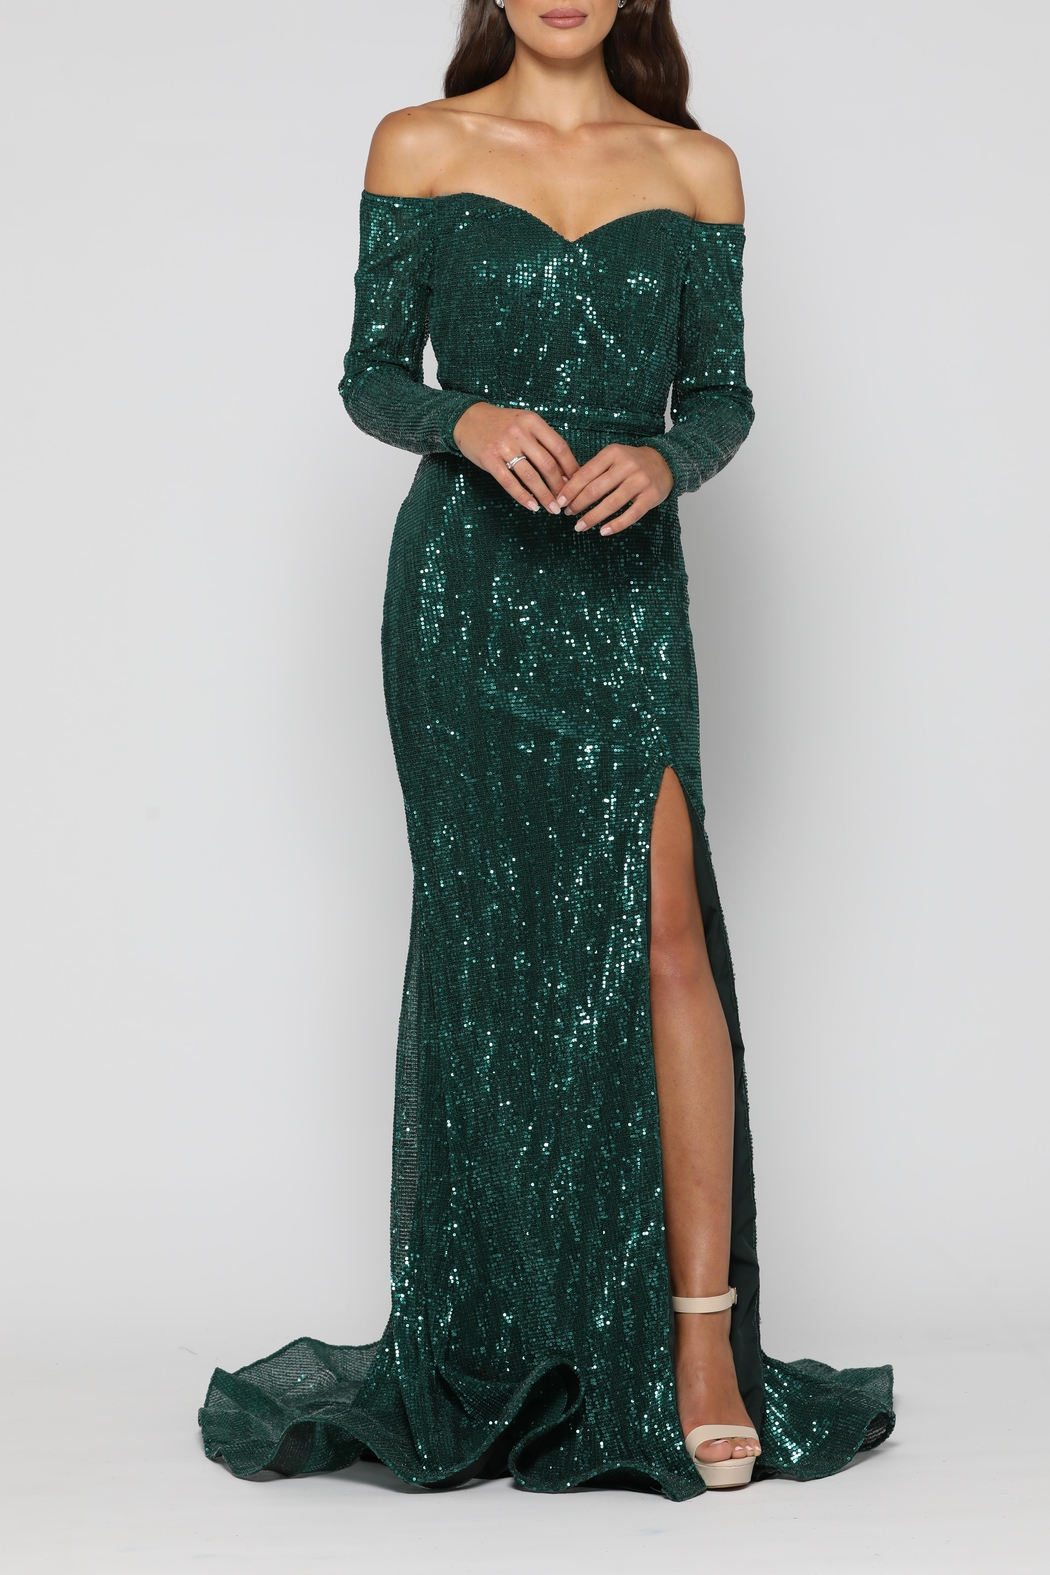 YSS the Label Veronica Gown Emerald - Main Image